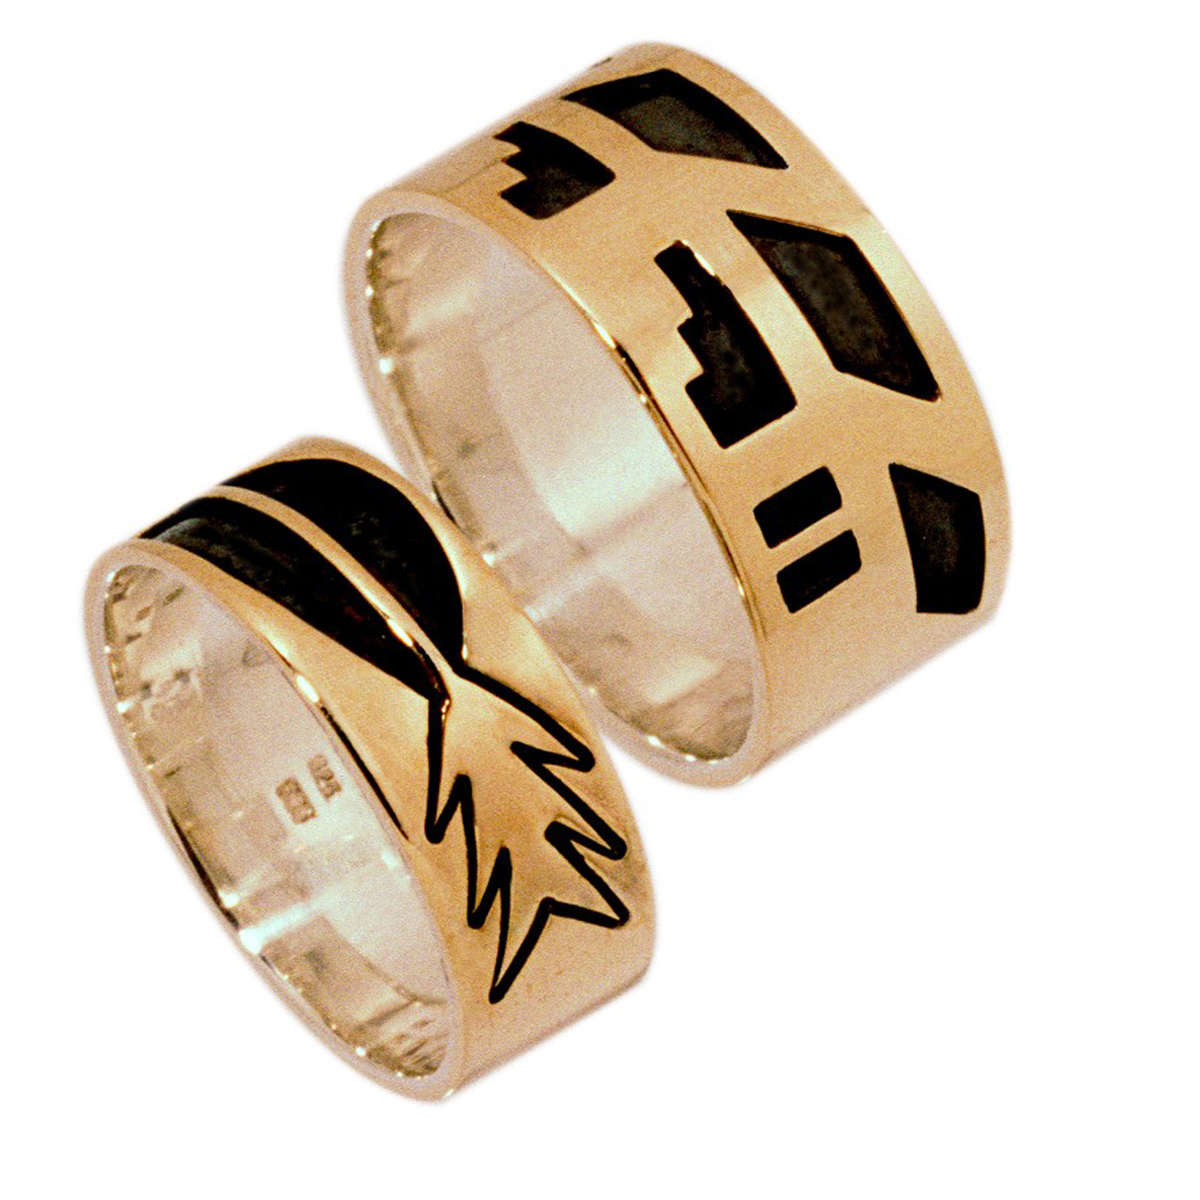 Hopi overlay wedding rings line Courage